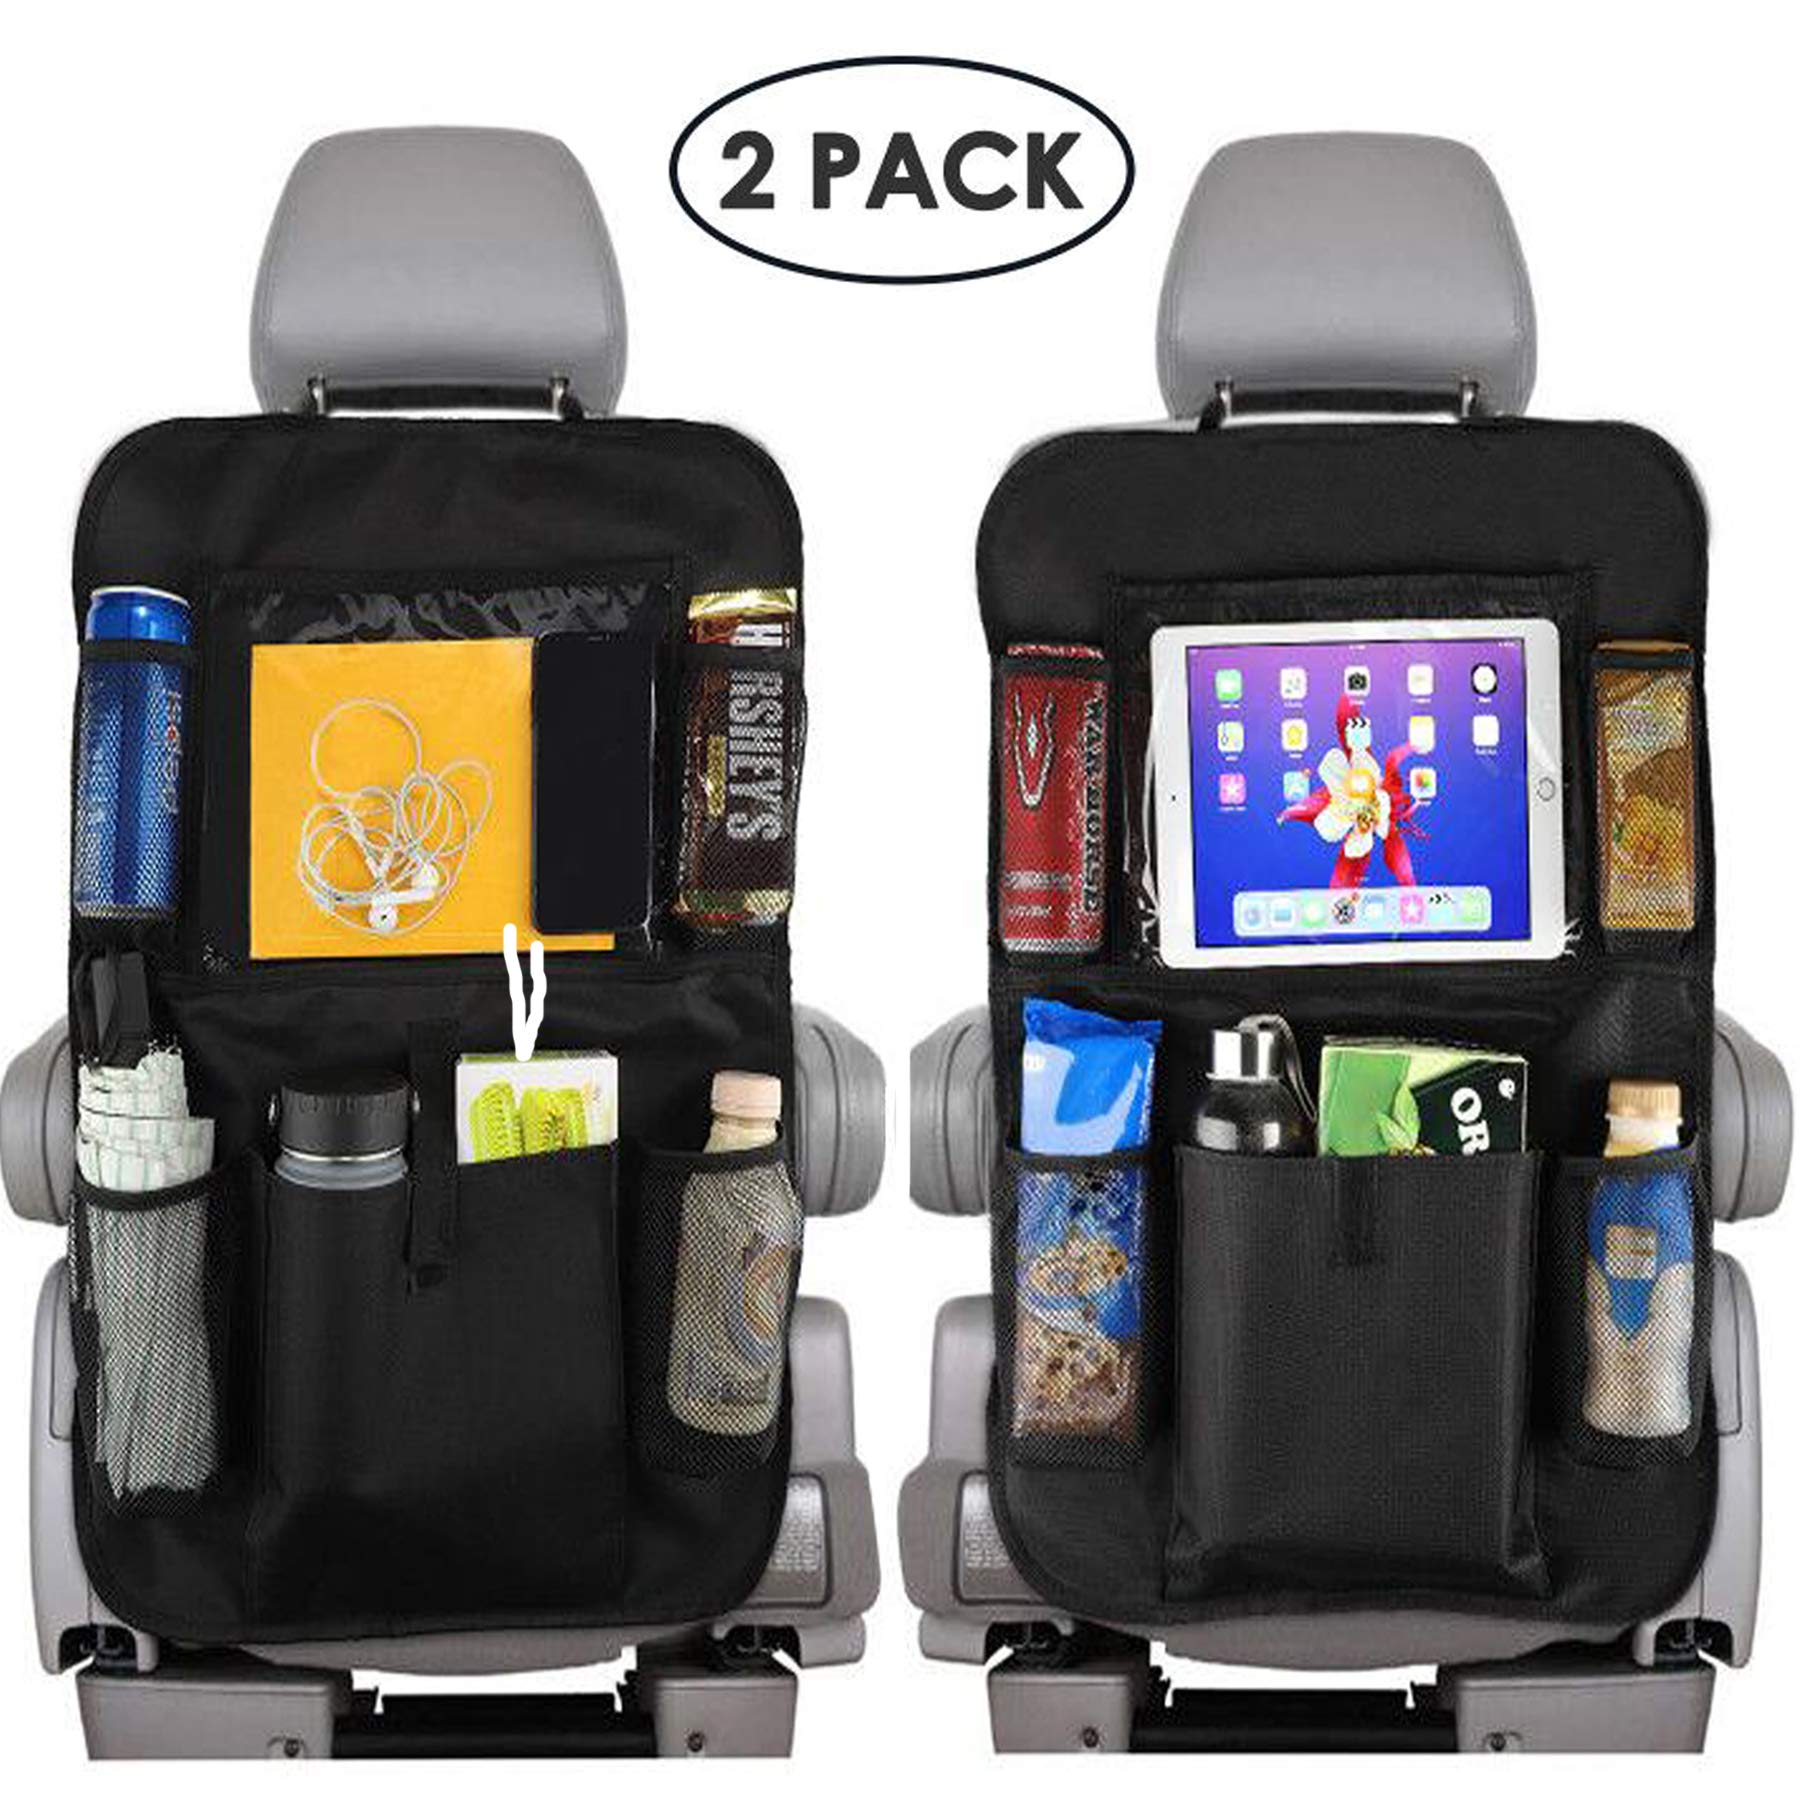 Reserwa Car Backseat Organizer 2 Pack Waterproof and Durable Car Seat Organizer Kick Mats Muti-Pocket Back Seat Storage Bag with Touch Screen Tablet Holder to Organize Toy iPad Bottle Snacks Books by Reserwa